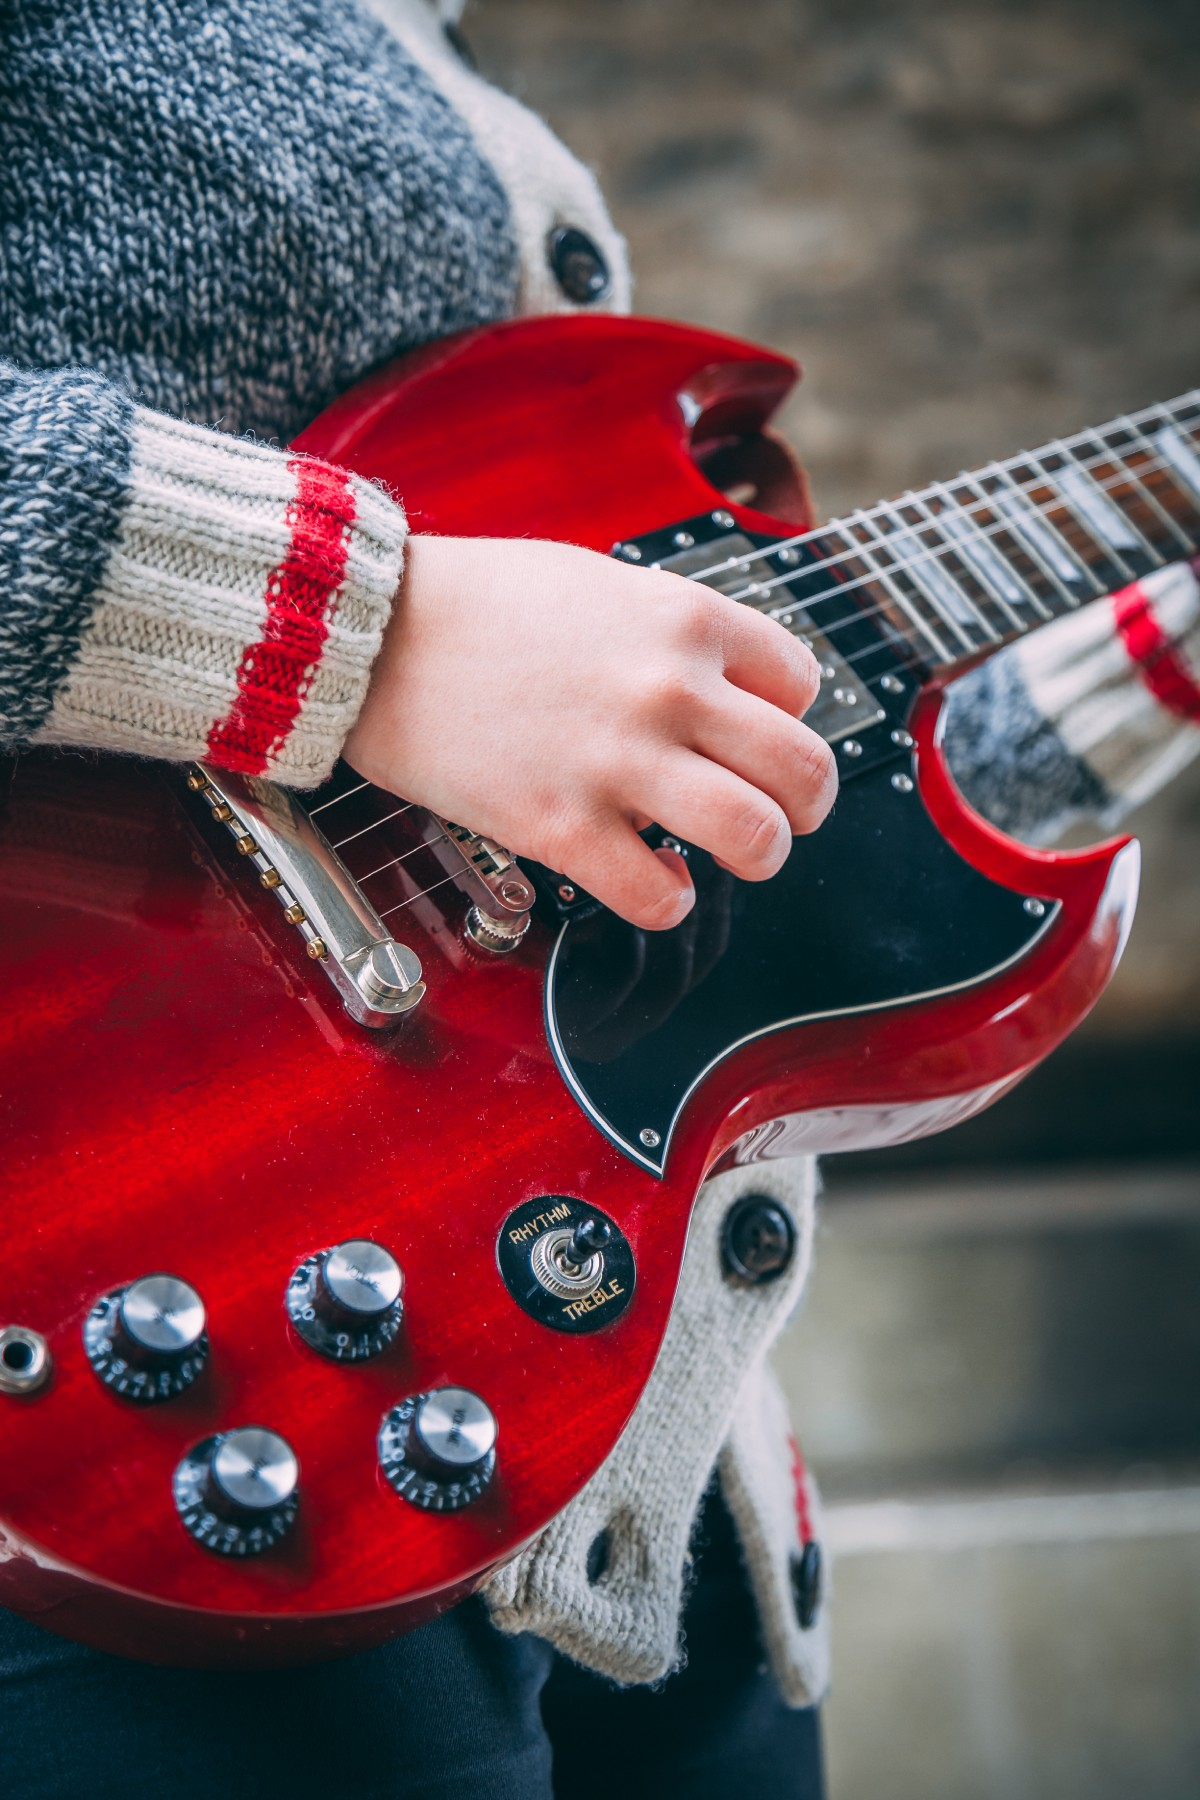 How to play guitar for beginners?